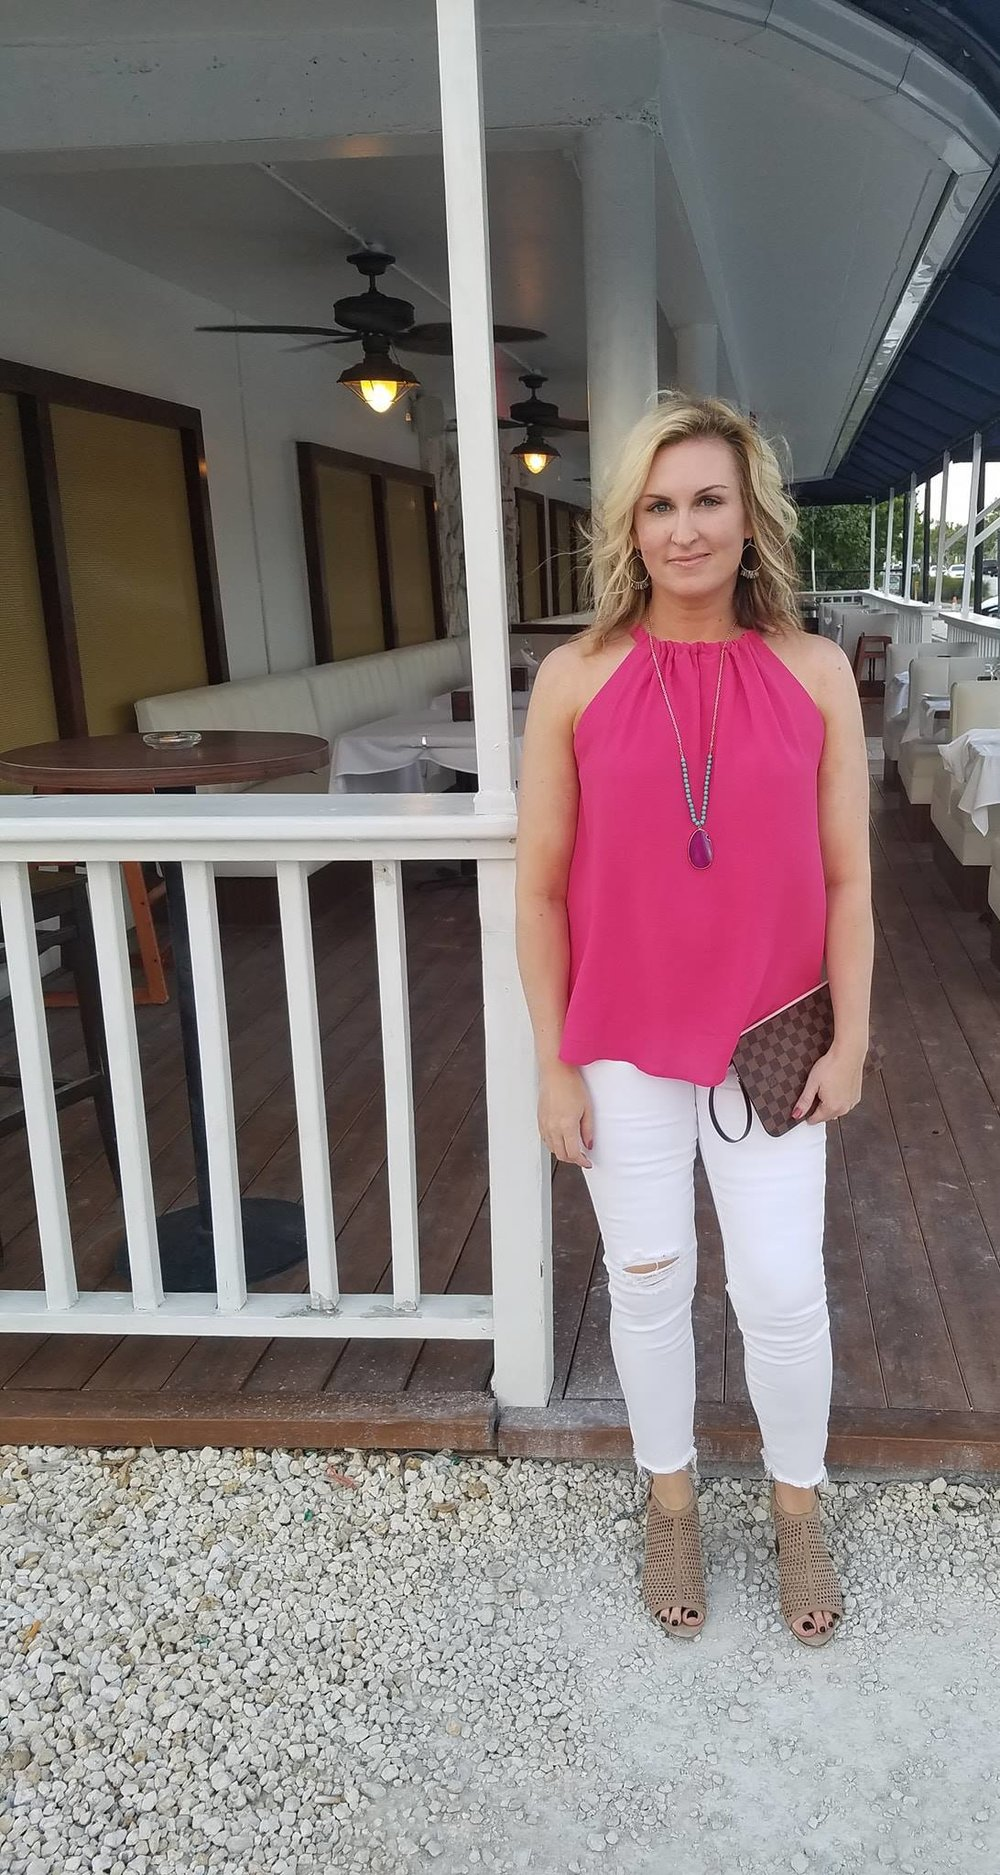 My top is now available in fall colors and fits TTS.  http://shopstyle.it/l/TmJW   Similar white jeans  http://shopstyle.it/l/TmJ2   Shoes (TTS)  http://shopstyle.it/l/TmJ8   Similar necklace  http://shopstyle.it/l/TmKz   SImilar necklace  http://shopstyle.it/l/TmJL   Similar necklace  http://shopstyle.it/l/TmKP